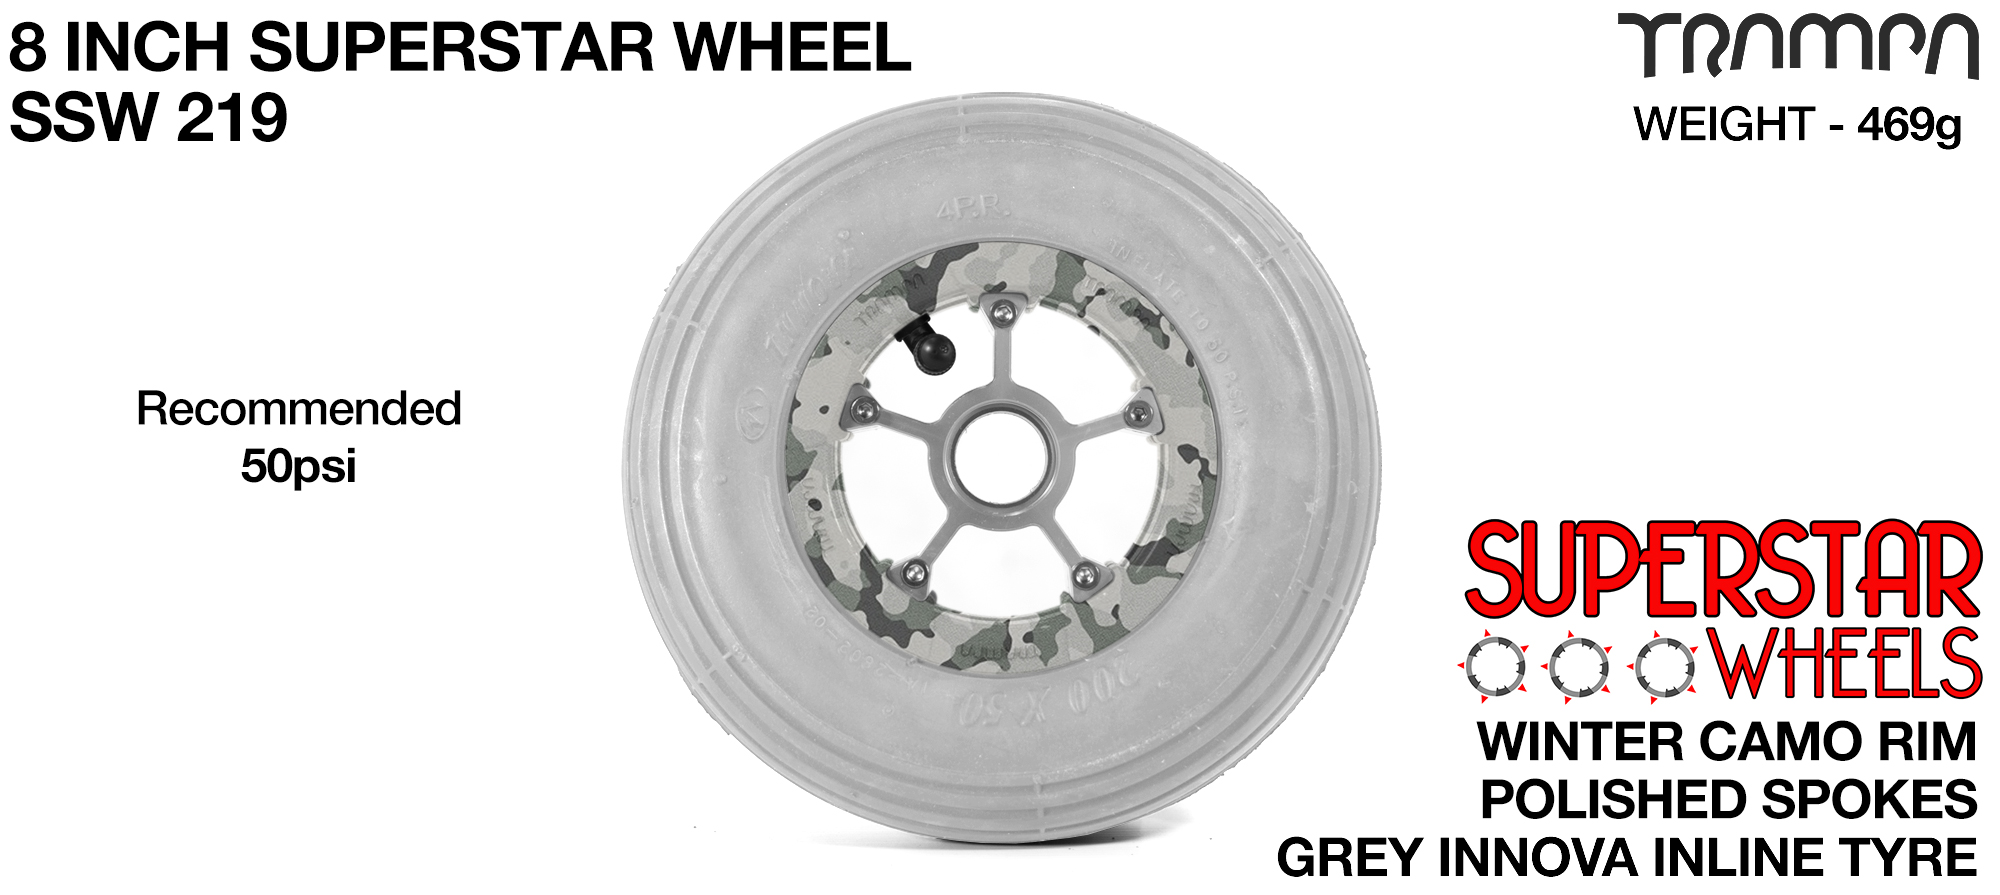 Superstar 8 Inch Wheel - Winter Camo Superstar Rim Silver Anodised Spokes & Grey 8 Inch Inline Tyre